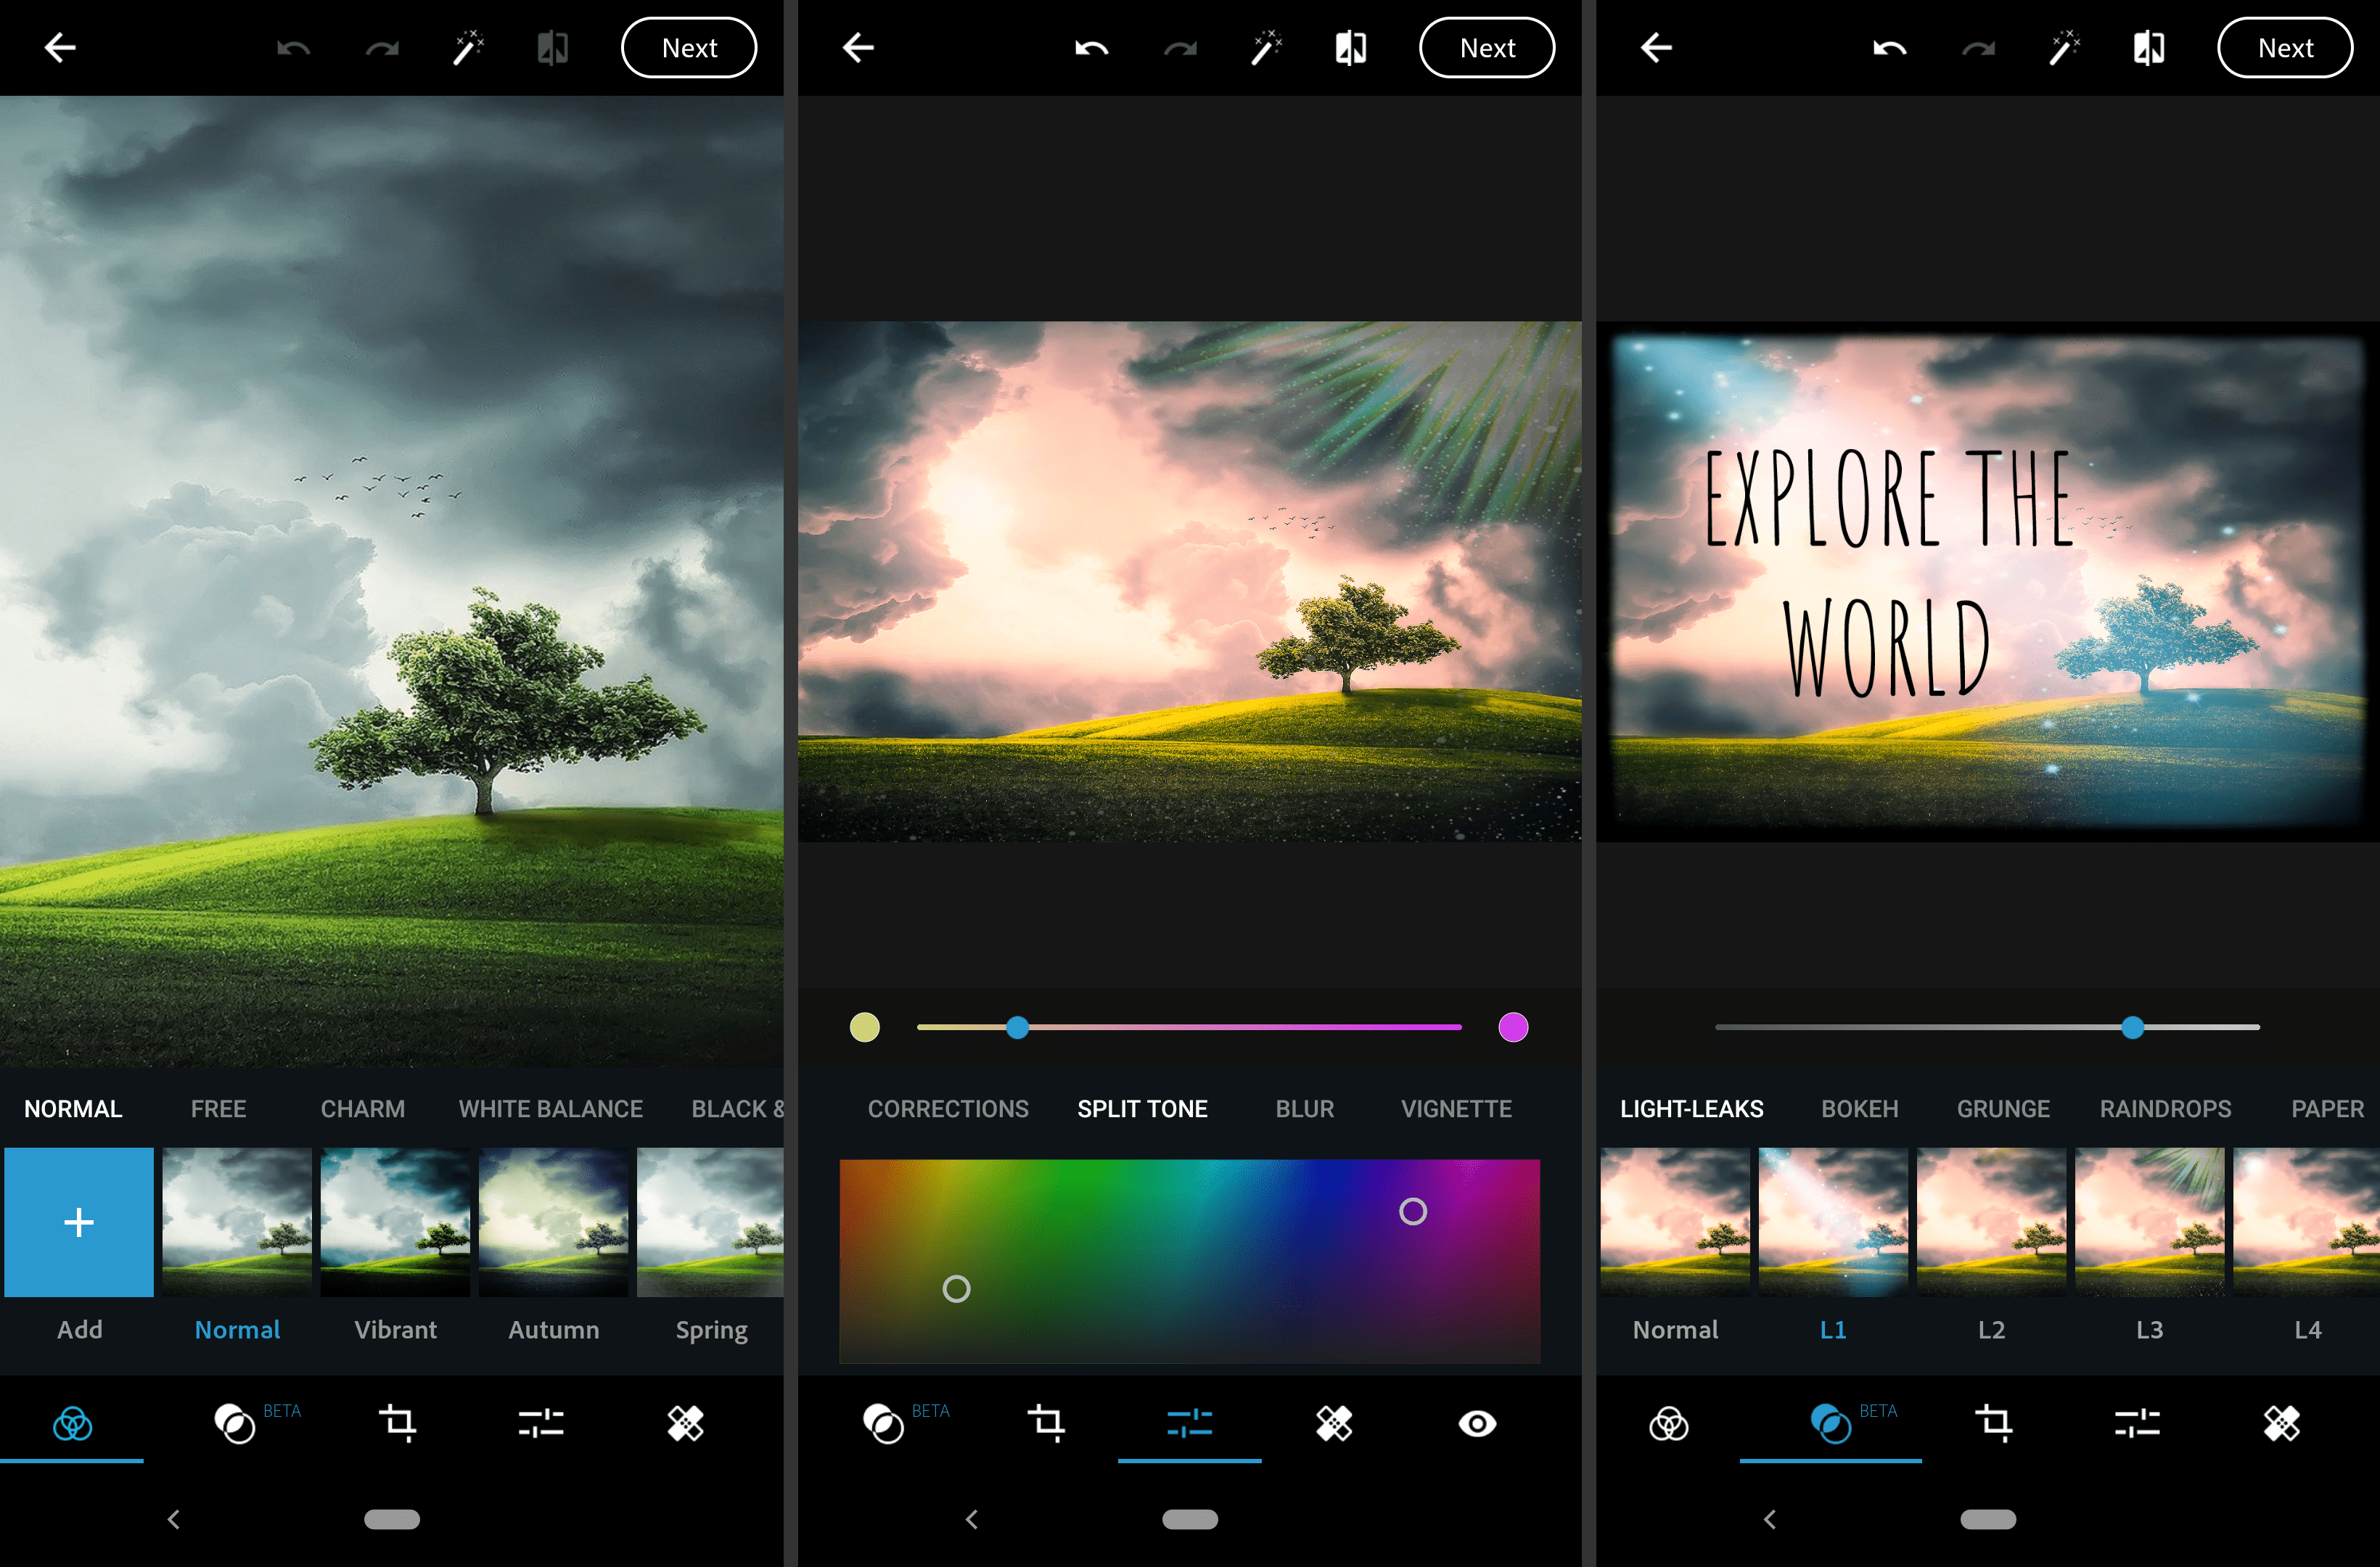 Screenshots of the Adobe Photoshop Express Android image editor